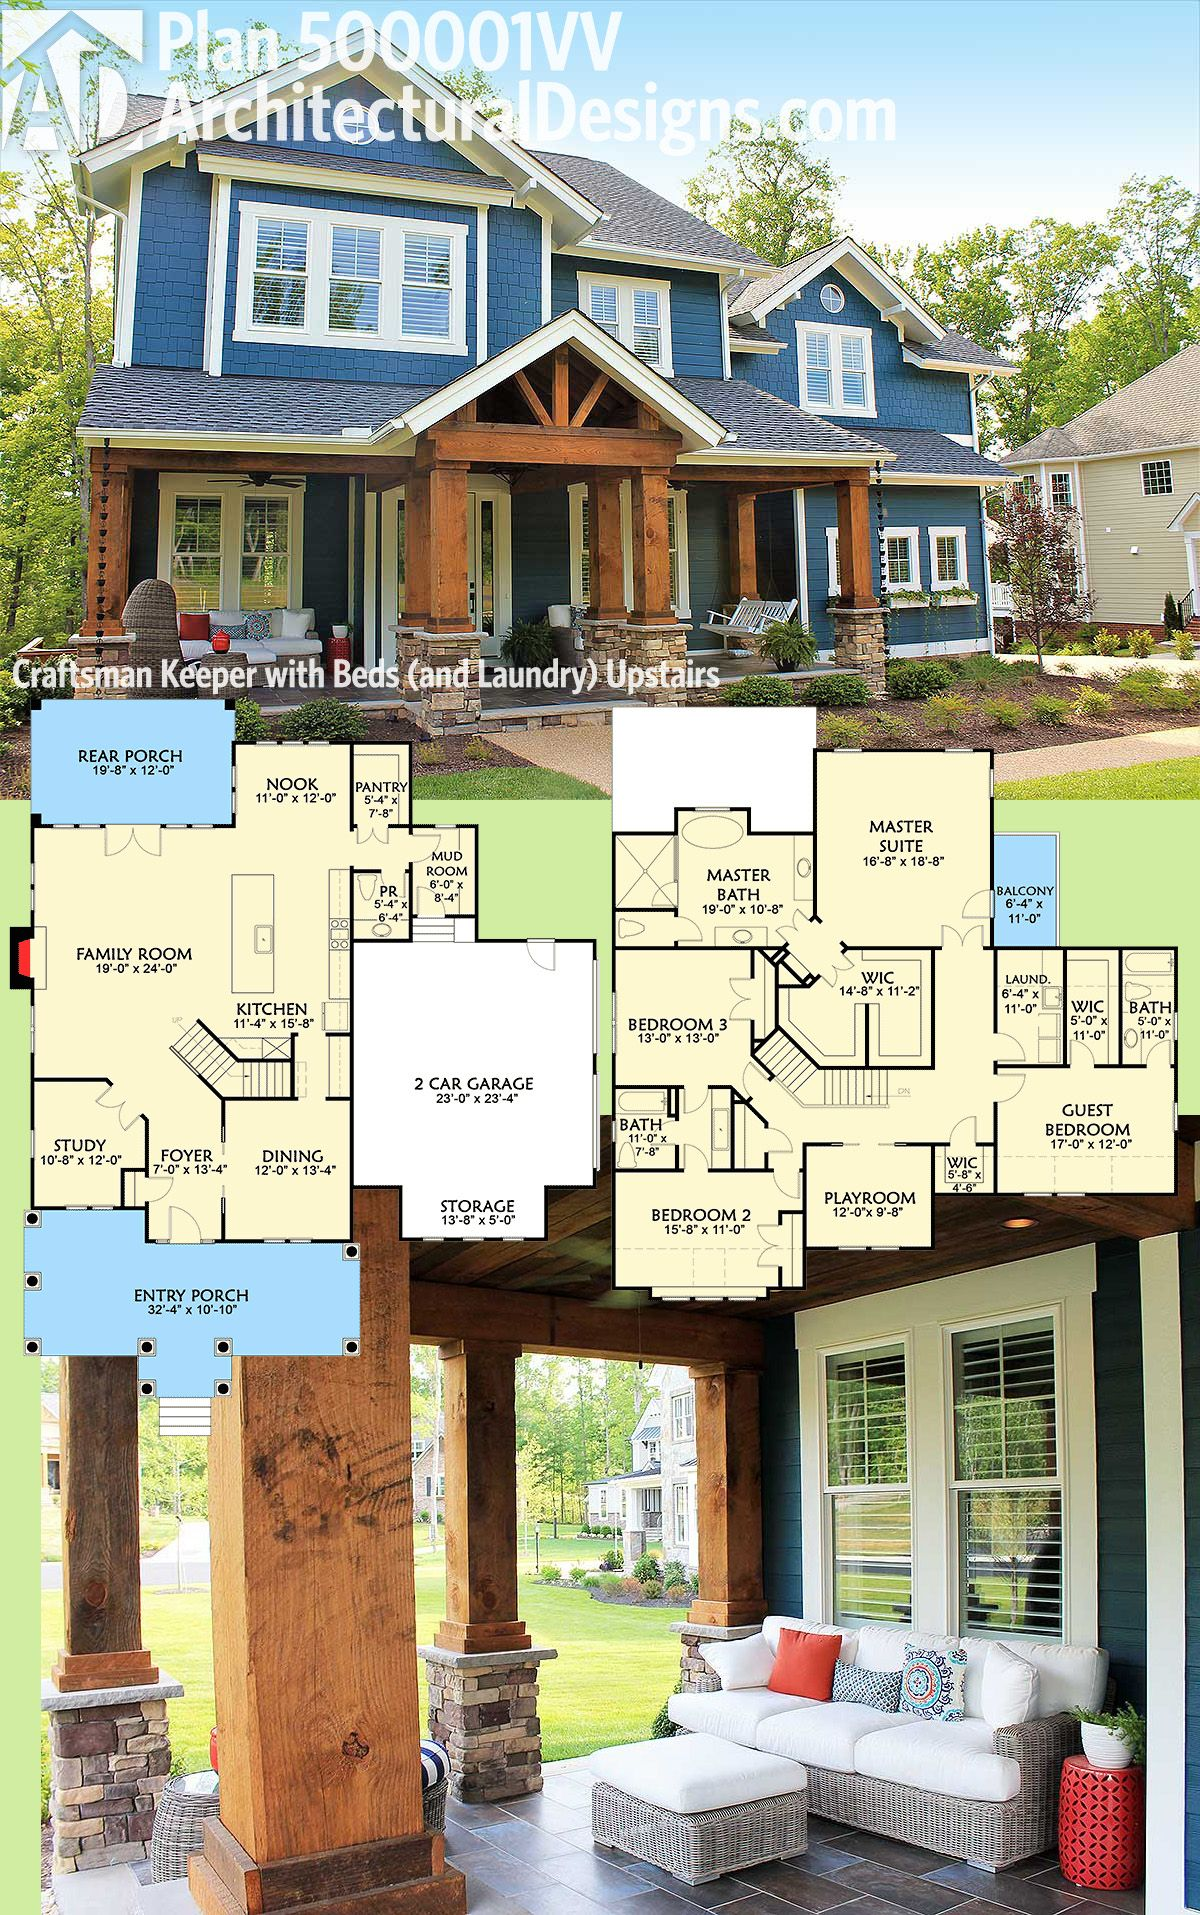 Plan 500001VV: Craftsman Keeper with Beds (and Laundry) Upstairs ...